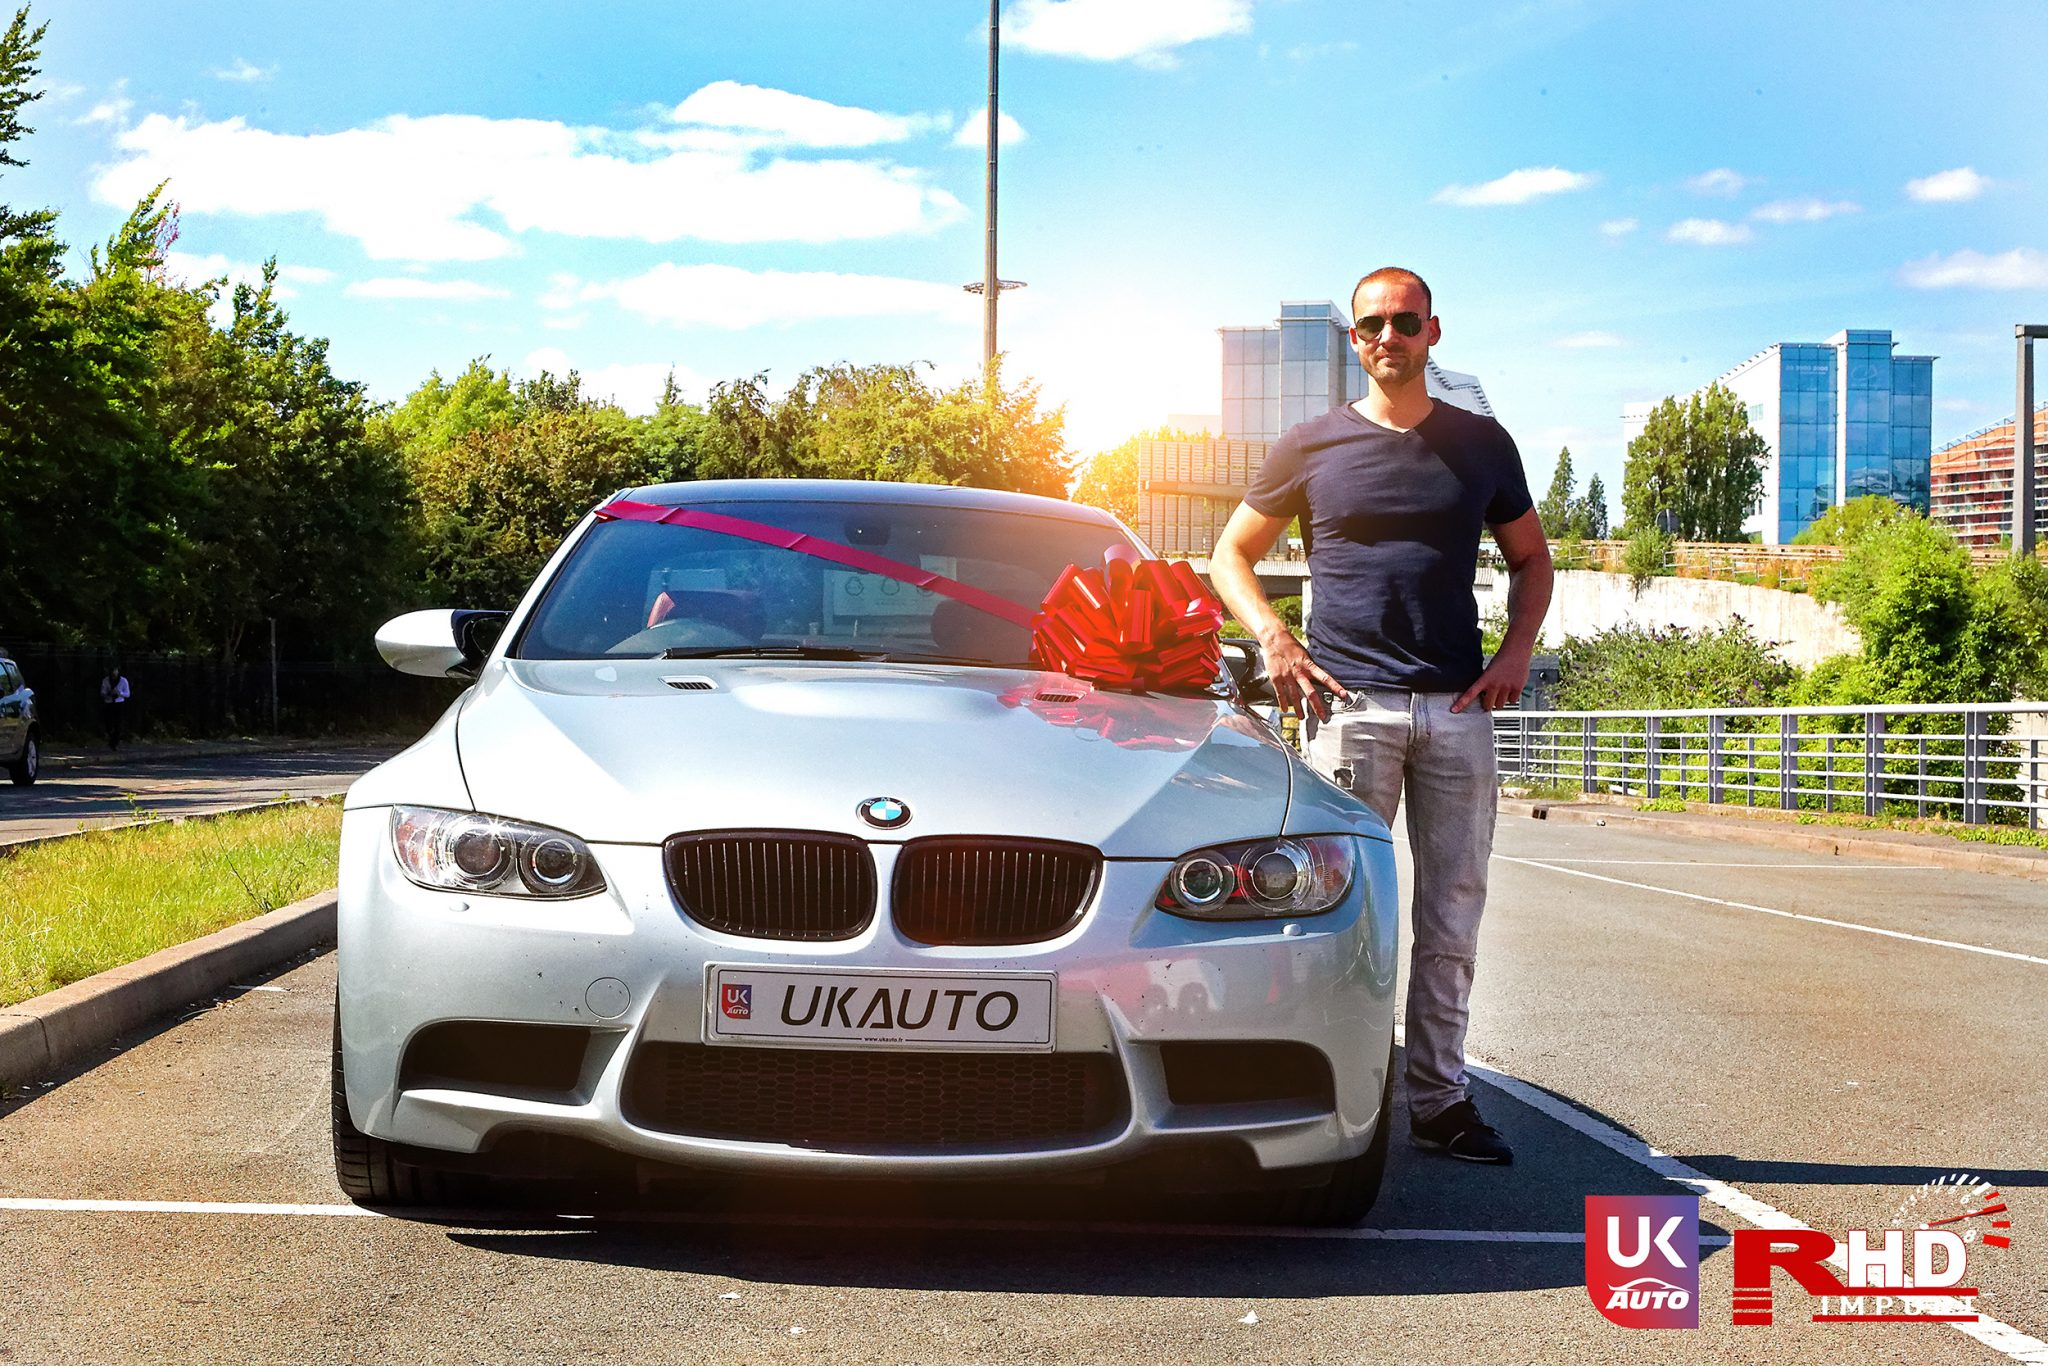 ukauto uk import bmw angleterre bmw m3 rhd e92 v8 mandataire uk angleterre voiture15 - Felicitation a Philippe BMW M3 E92 RHD POUR IMPORTER UNE VOITURE EN ANGLETERRE